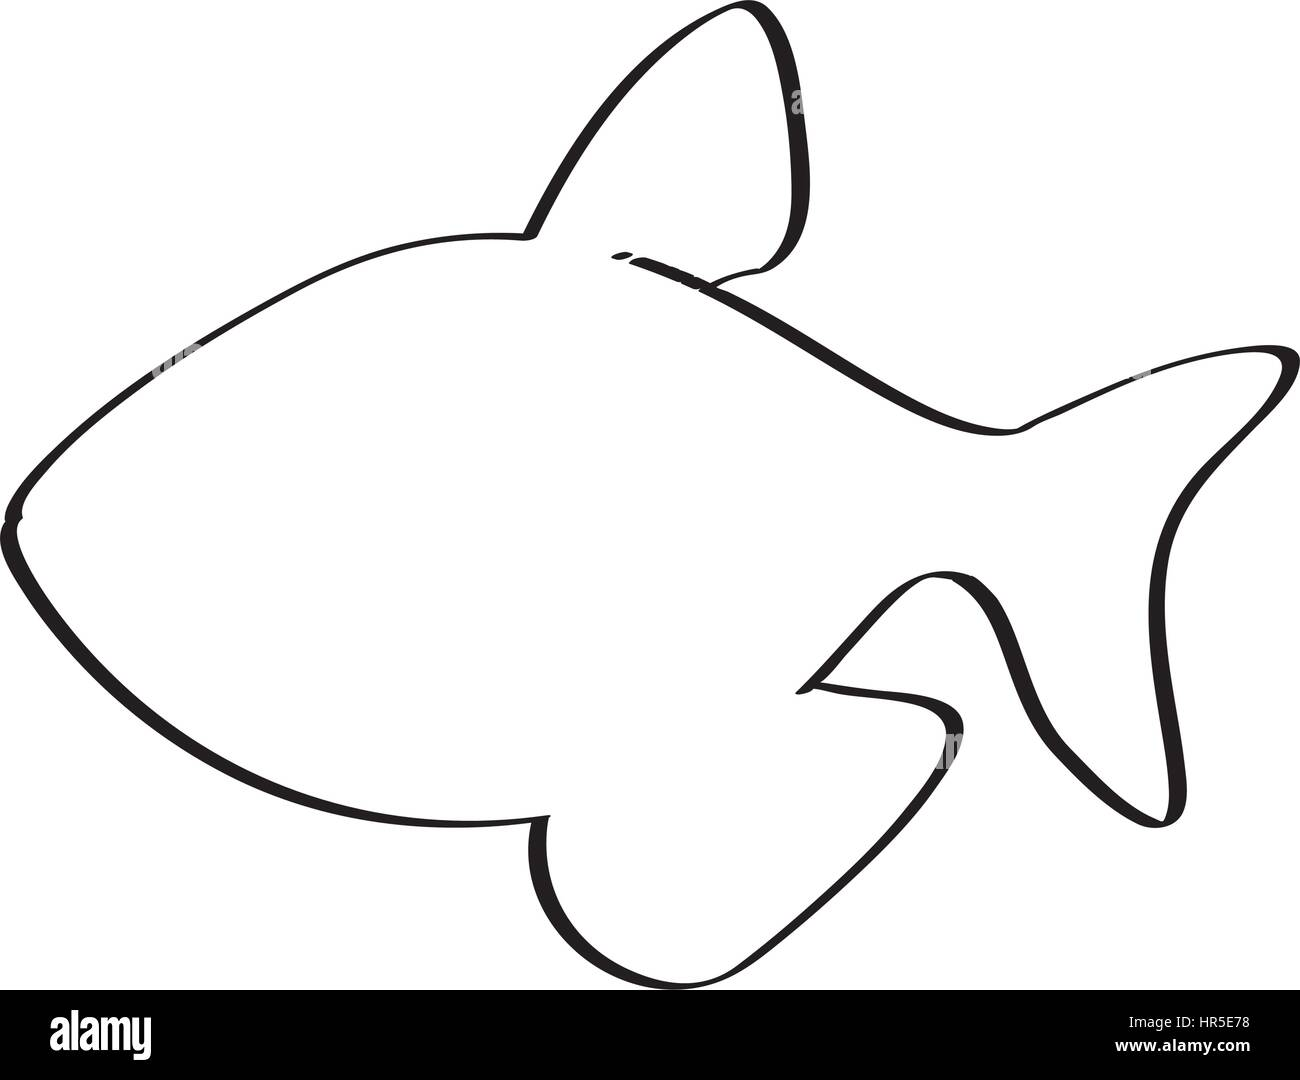 silhouette with line contour of fish Stock Vector Art & Illustration ...